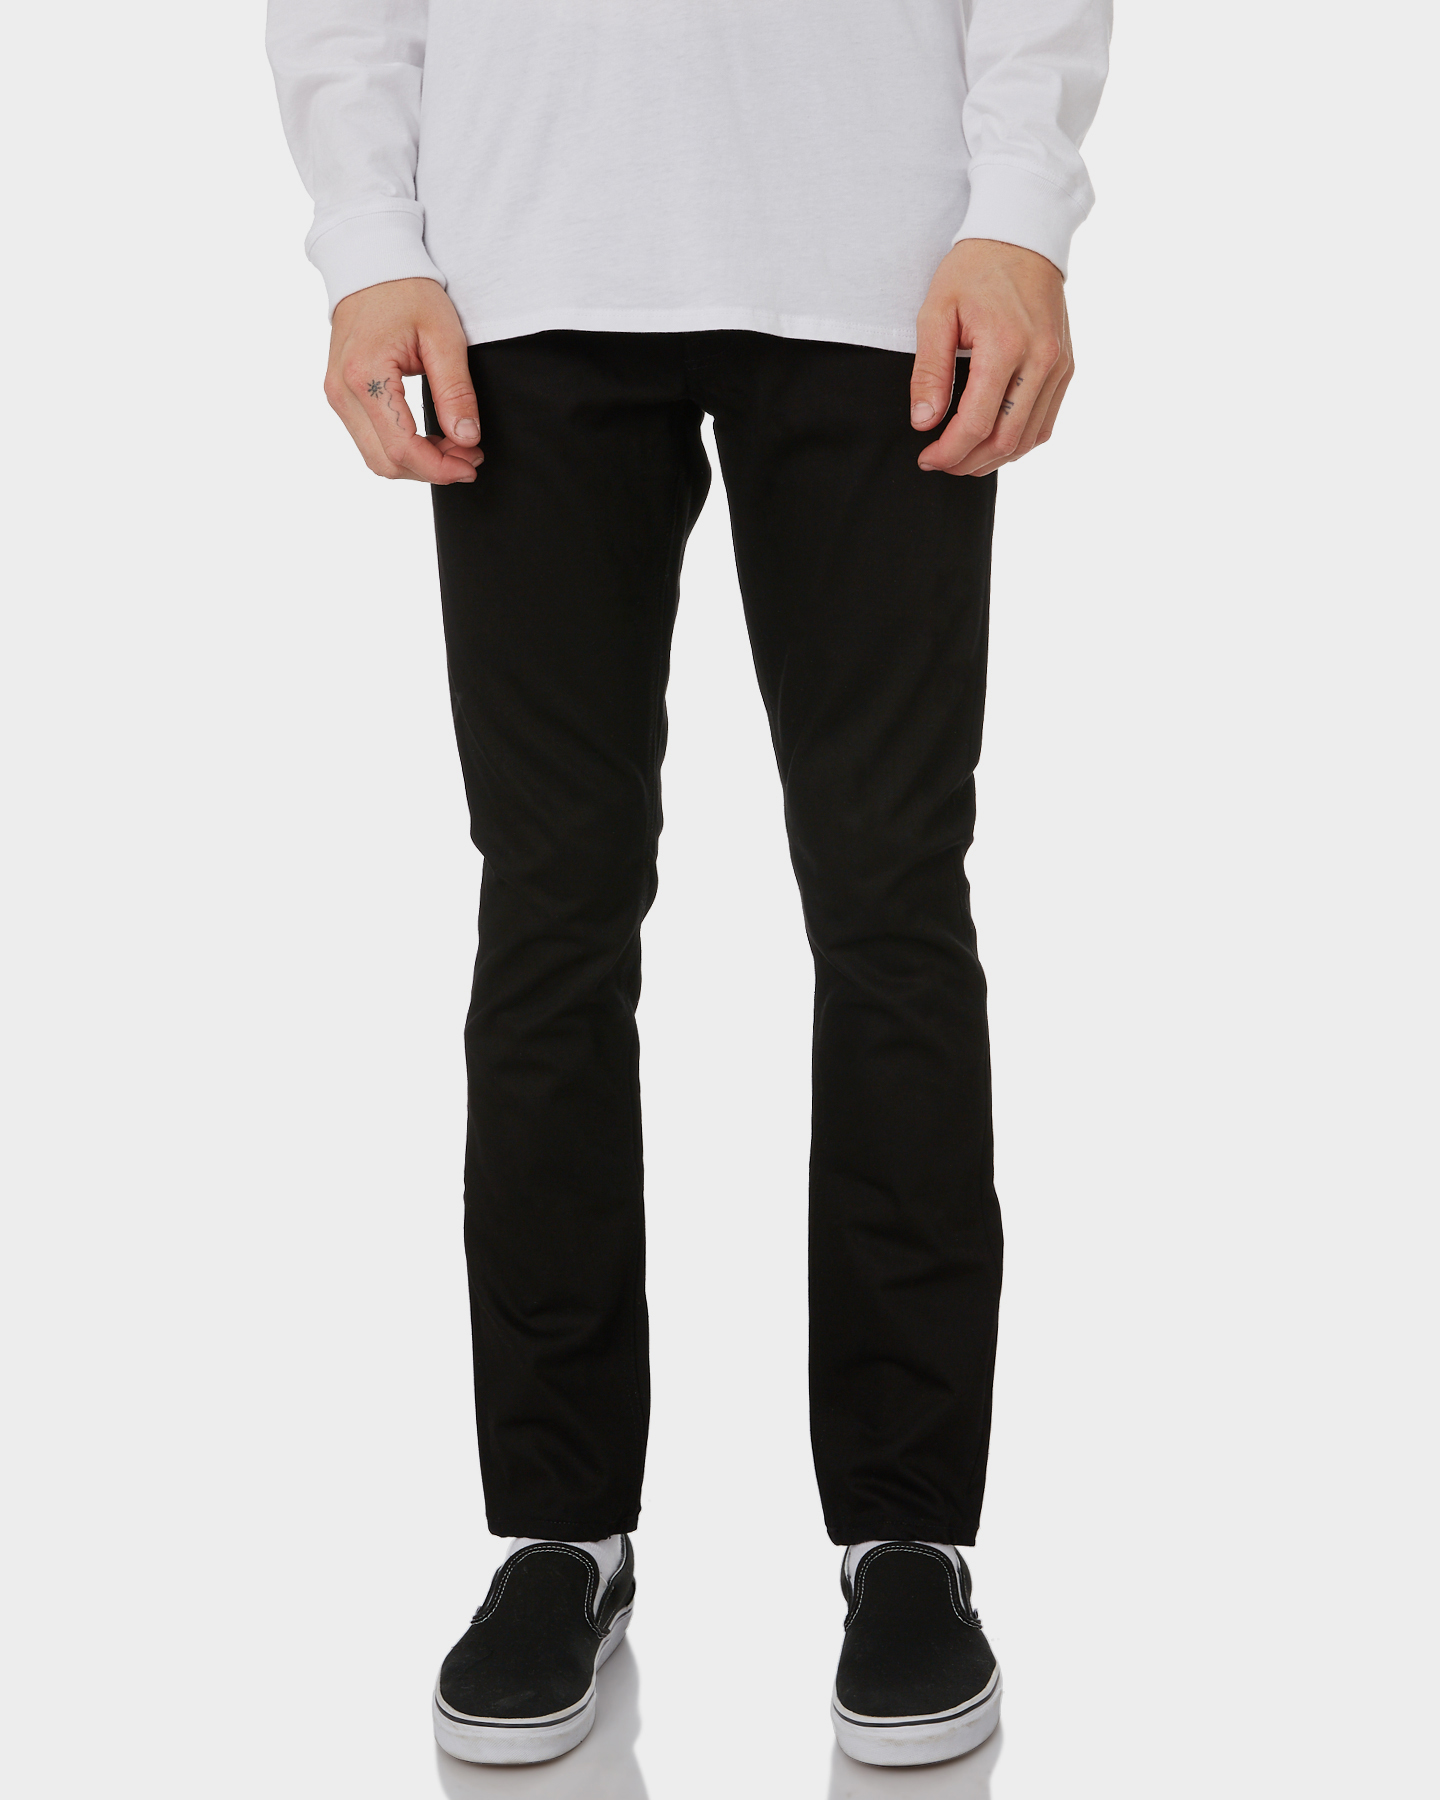 Nudie Jeans Co Lean Dean Cotton Dry Cold Black Mens Slim Jeans